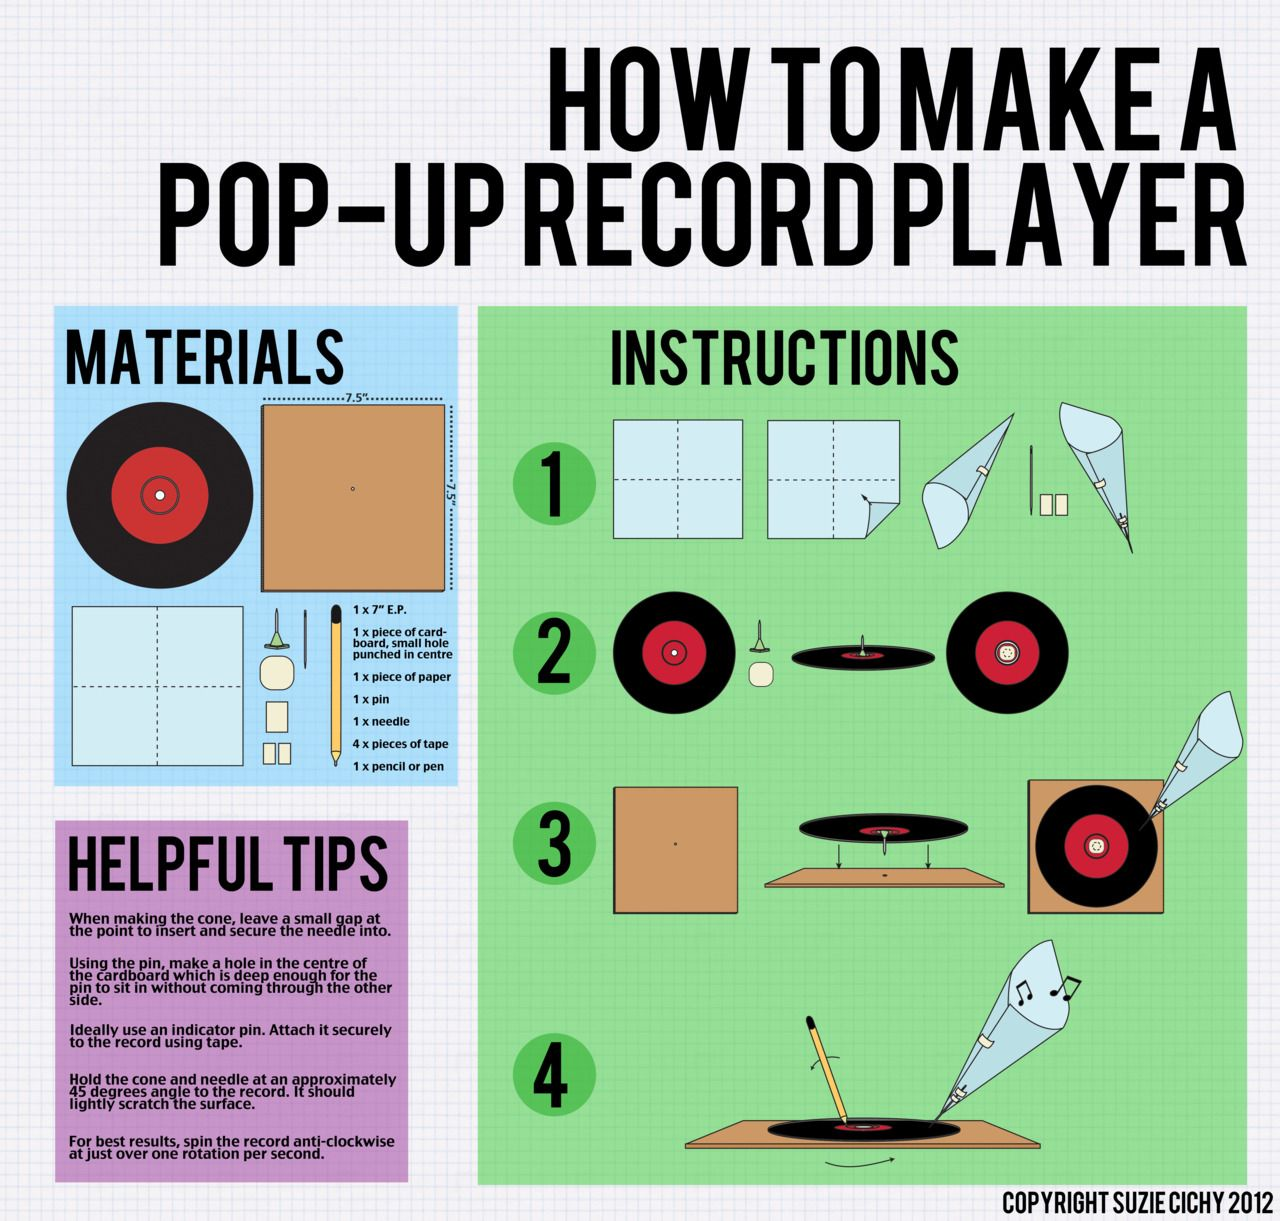 How To Make A Pop-Up Record Player ... Just In Case